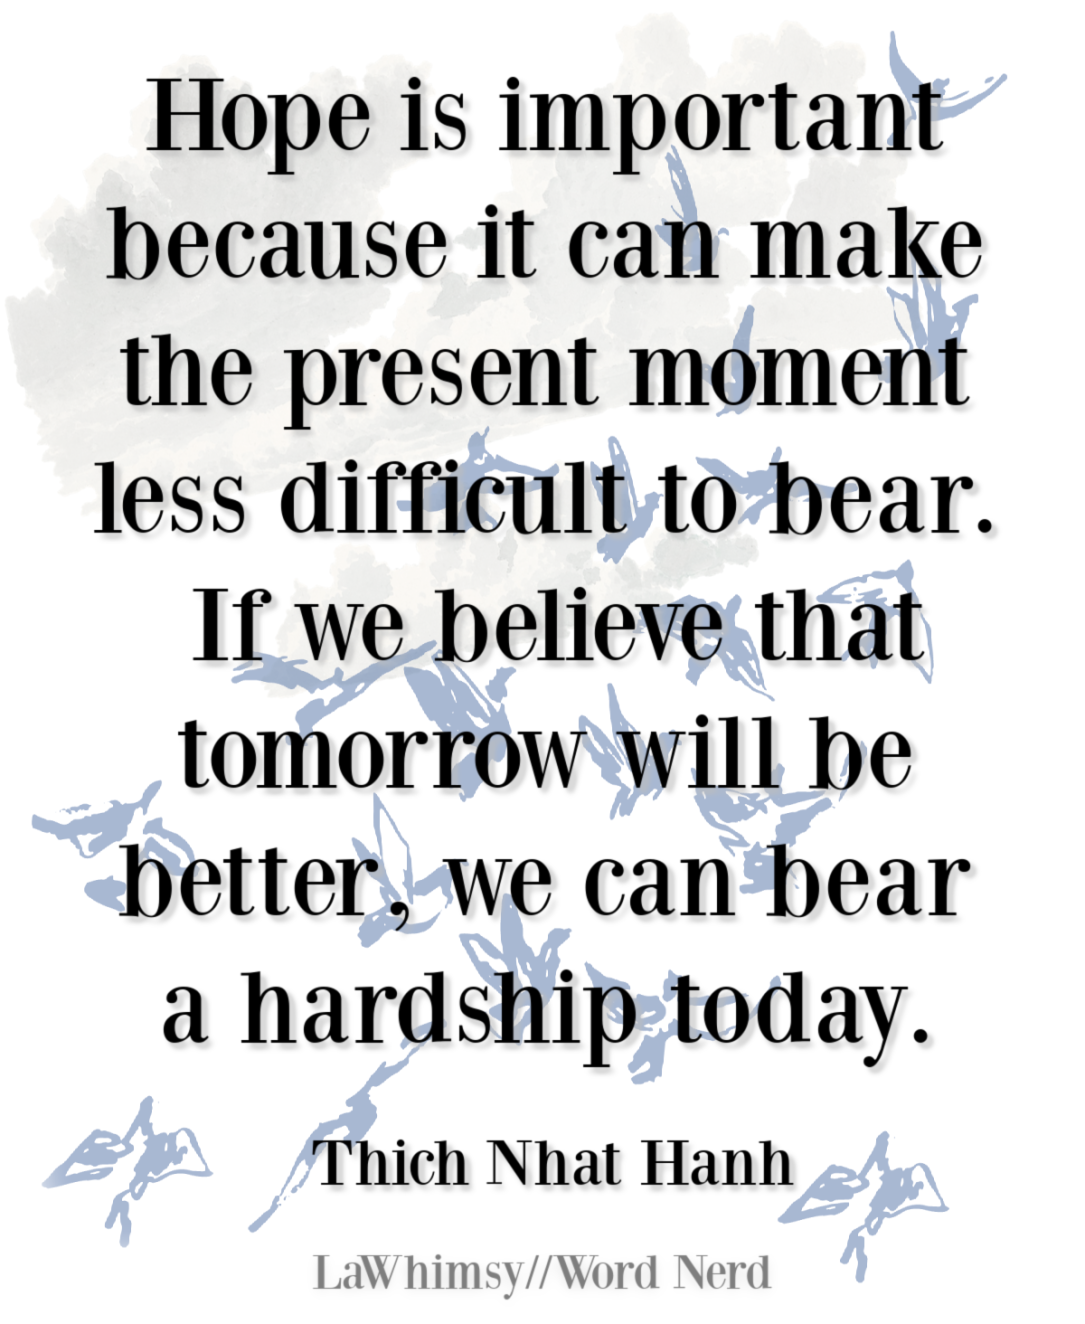 Hope is important because it can make the present moment less difficult to bear Thich Nhat Hanh quote Monday Mantra 308 via LaWhimsy